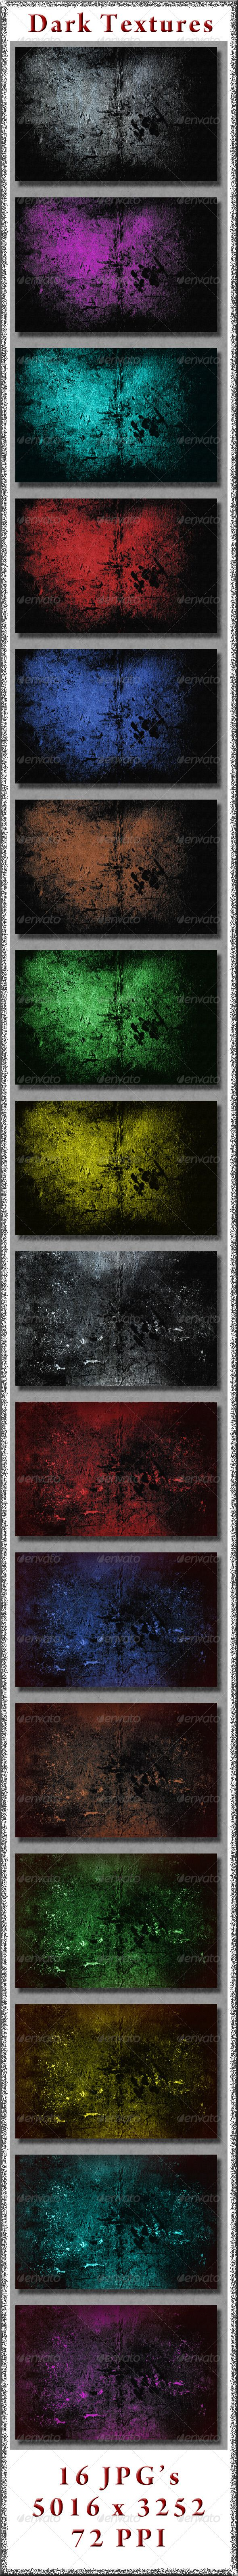 Dark Textures  #GraphicRiver         16 JPG's of Dark Textures  	 All JPG's are 5016×3252 / 72 ppi     Created: 7March13 GraphicsFilesIncluded: JPGImage Layered: No MinimumAdobeCSVersion: CS PixelDimensions: 5016x3252 Tileable: No Tags: abstract #abstracts #art #backdrop #background #bundle #bundled #color #concept #dark #design #dirty #drama #dramatic #effects #emotional #grunge #horror #modern #pack #package #patterned #webcolors